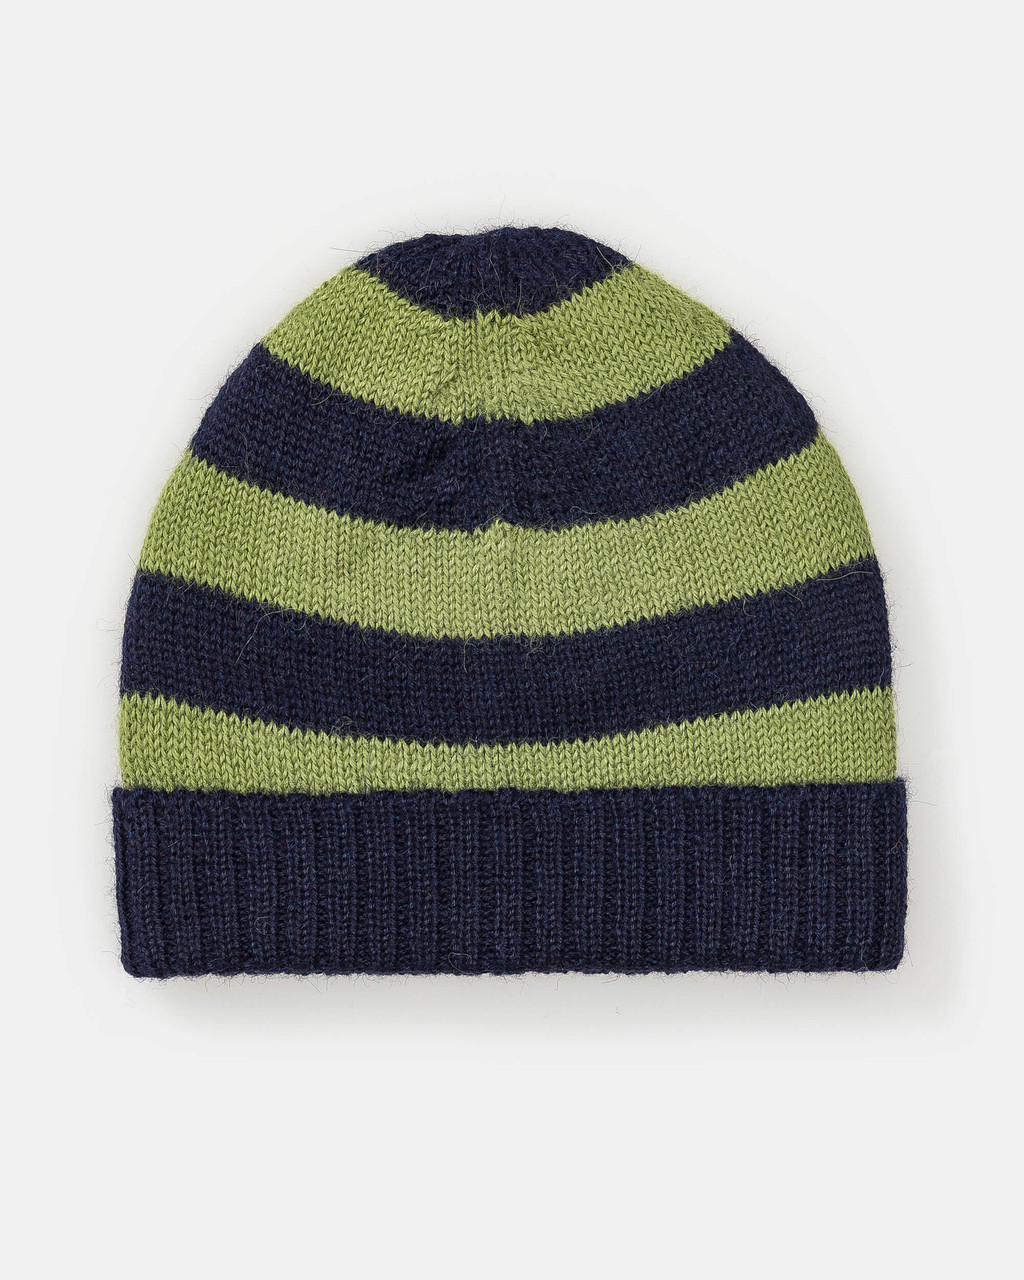 alicia adams alpaca charlie hat, alpaca hats for kids, alpaca beanie hat, all fair-trade made, alpaca vs cashmere, navy blue and peridot green hat